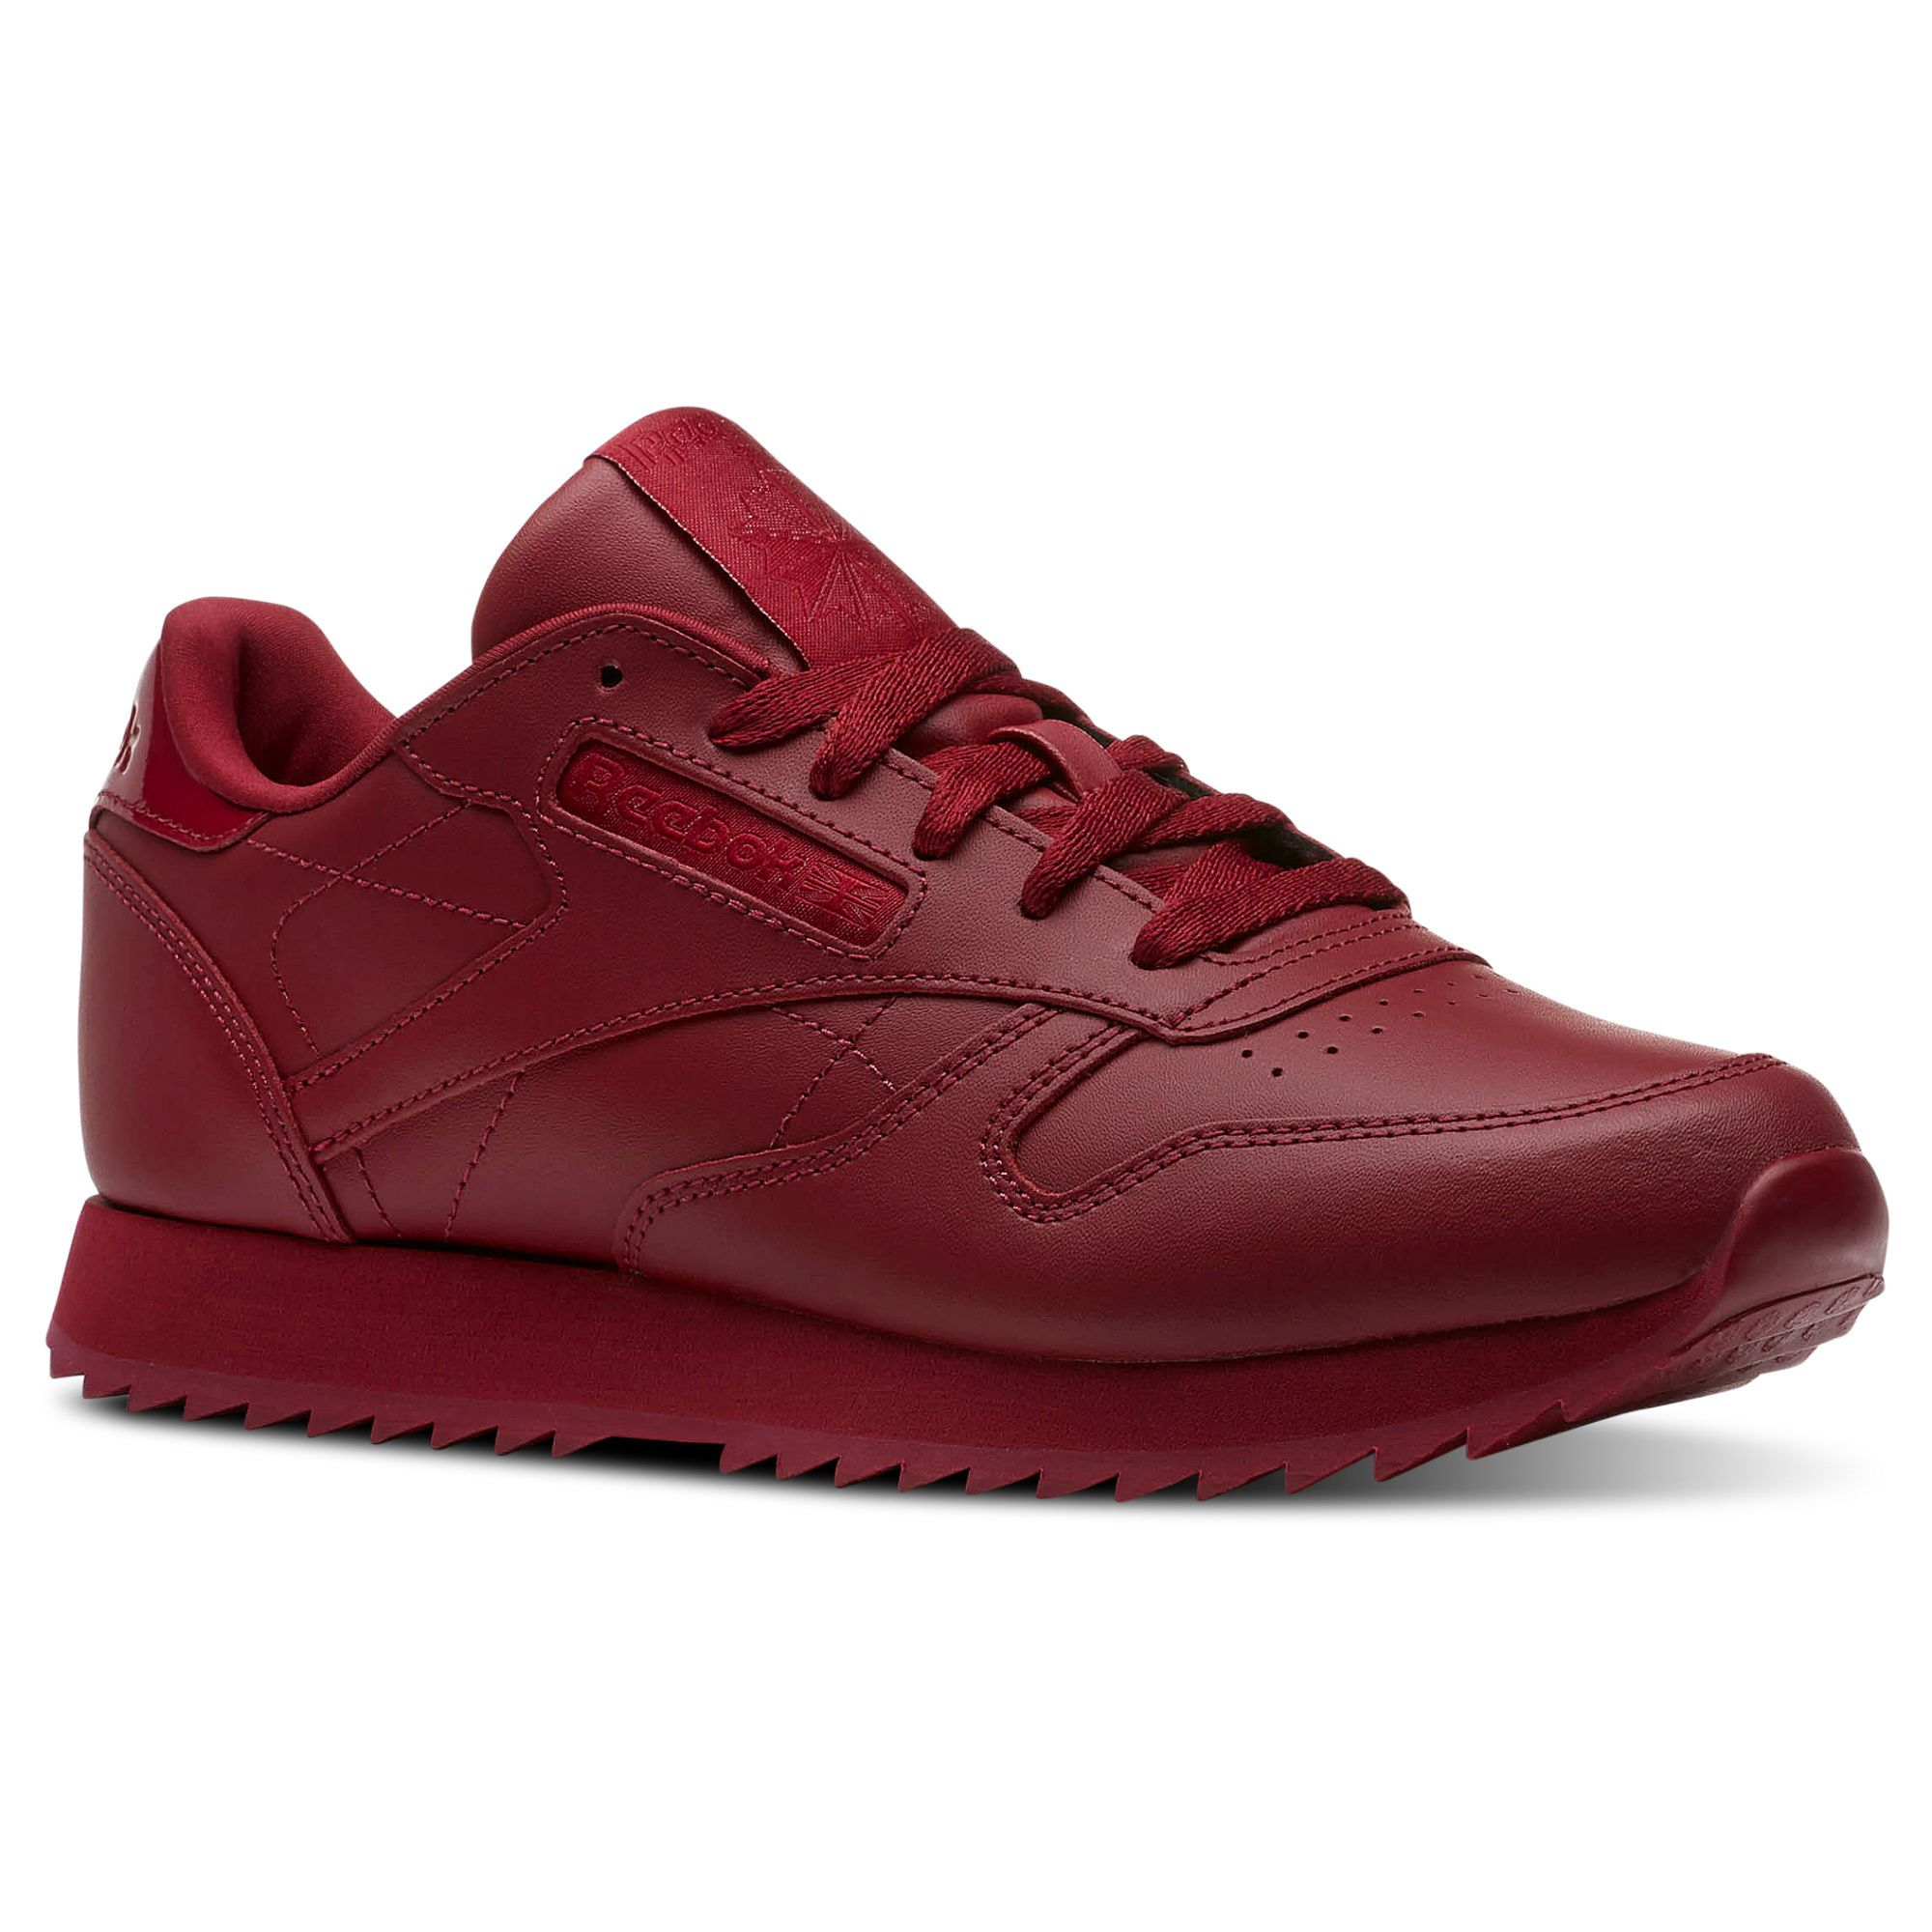 a82017a70b8 Shop for Classic Leather Ripple - Red at reebok.com. See all the styles and  colors of Classic Leather Ripple - Red at the official Reebok US online  store.